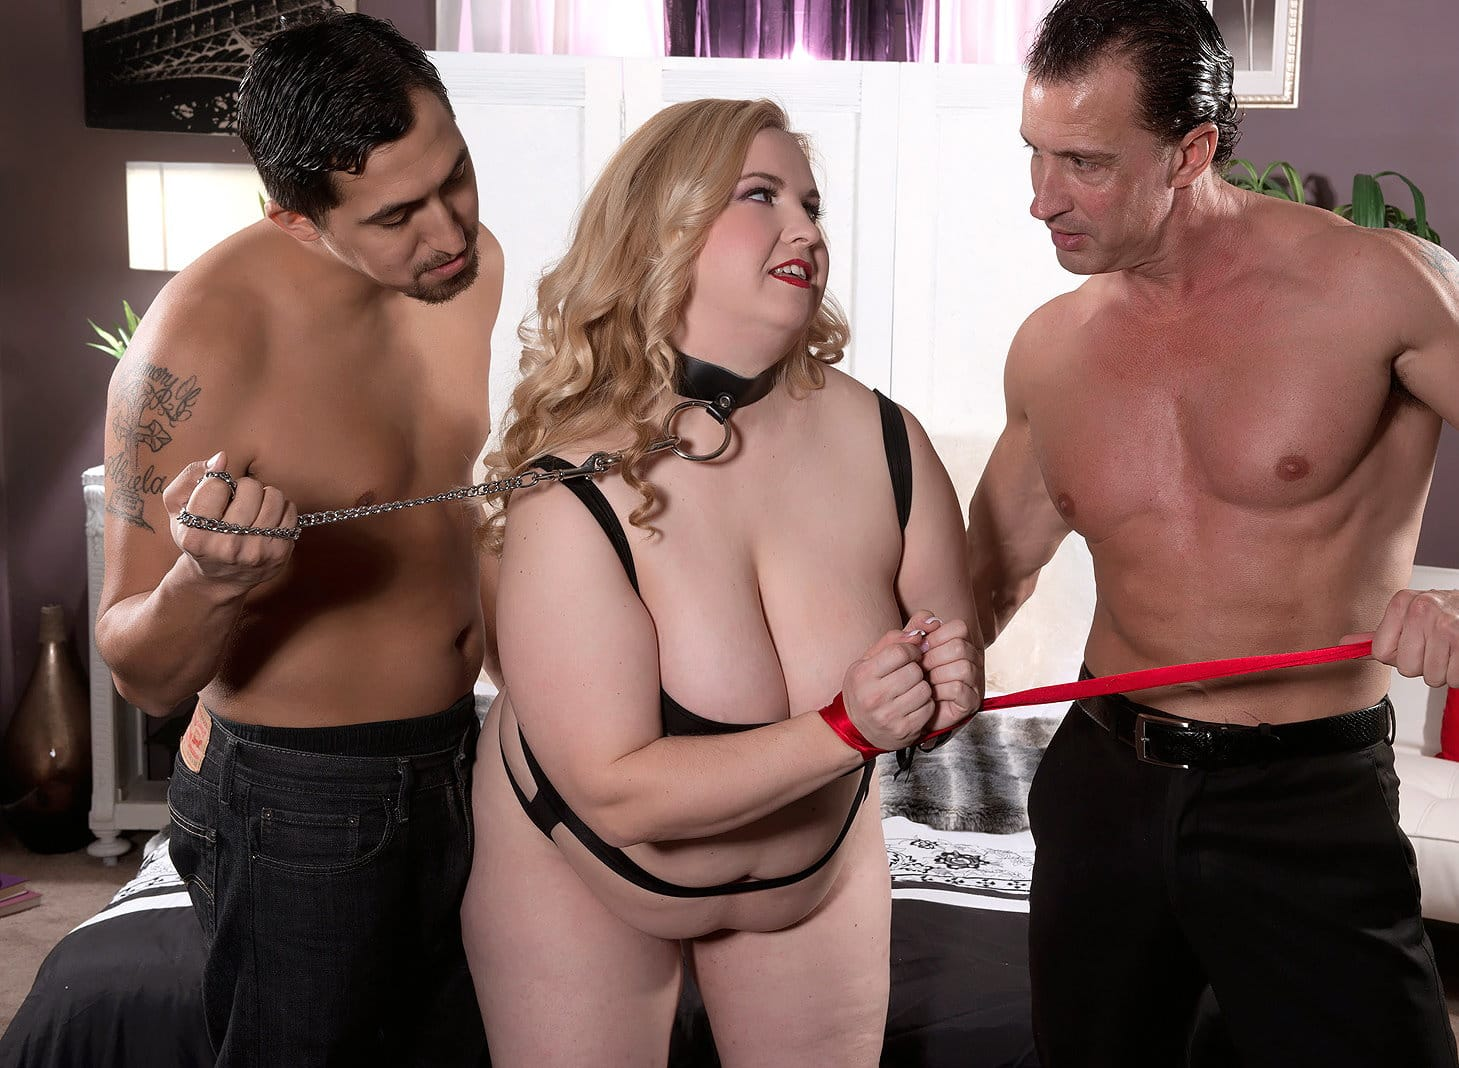 xl-girls-nikky-wilder-anal-slave-for-two-men